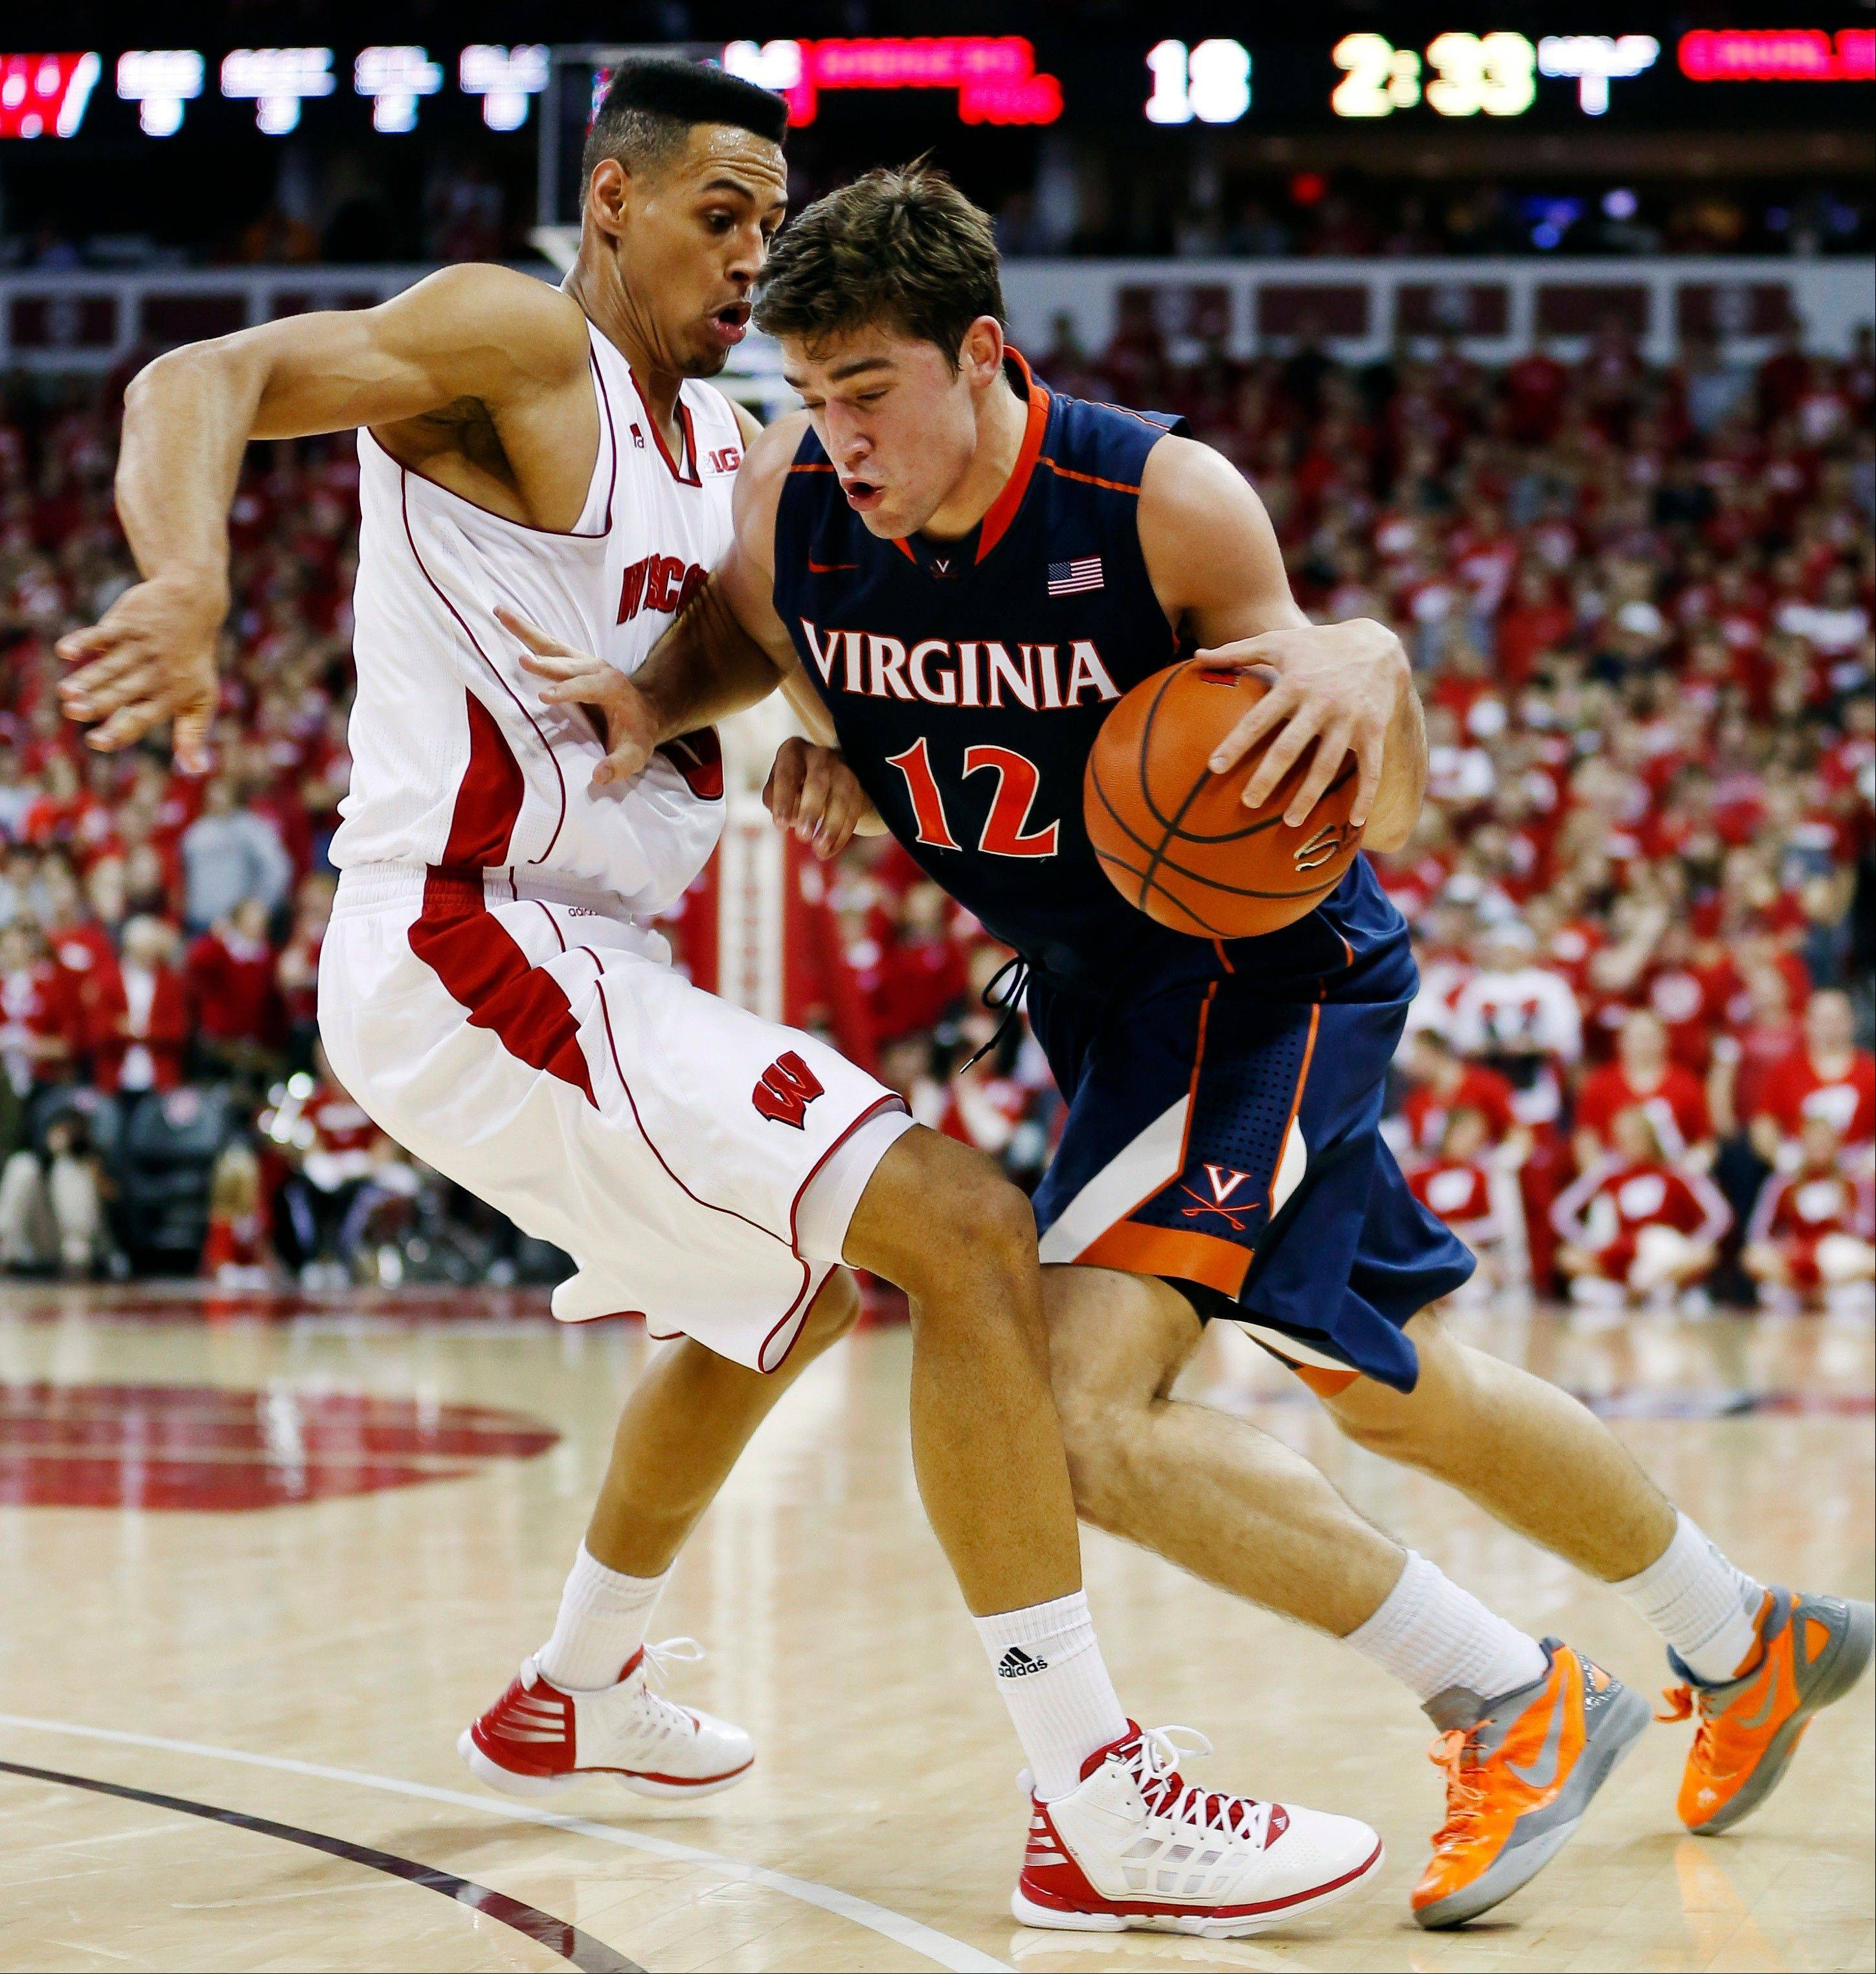 Harris leads Virginia to 60-54 win over Wisconsin